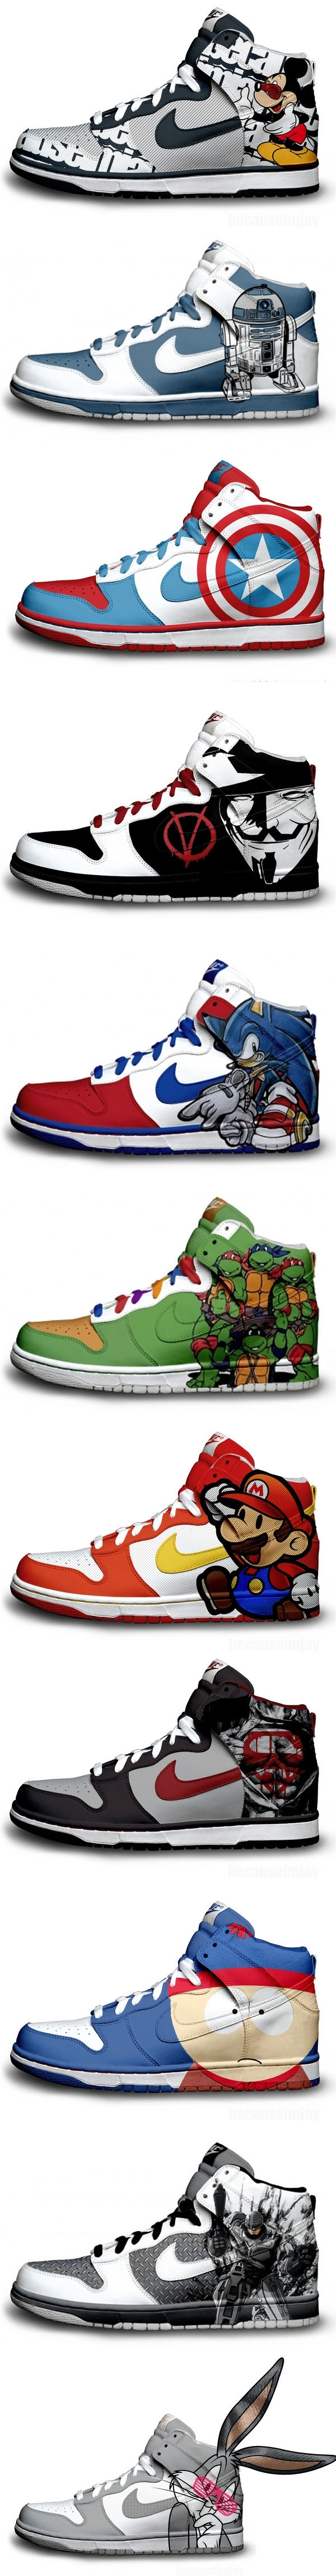 Themed Nike Shoes